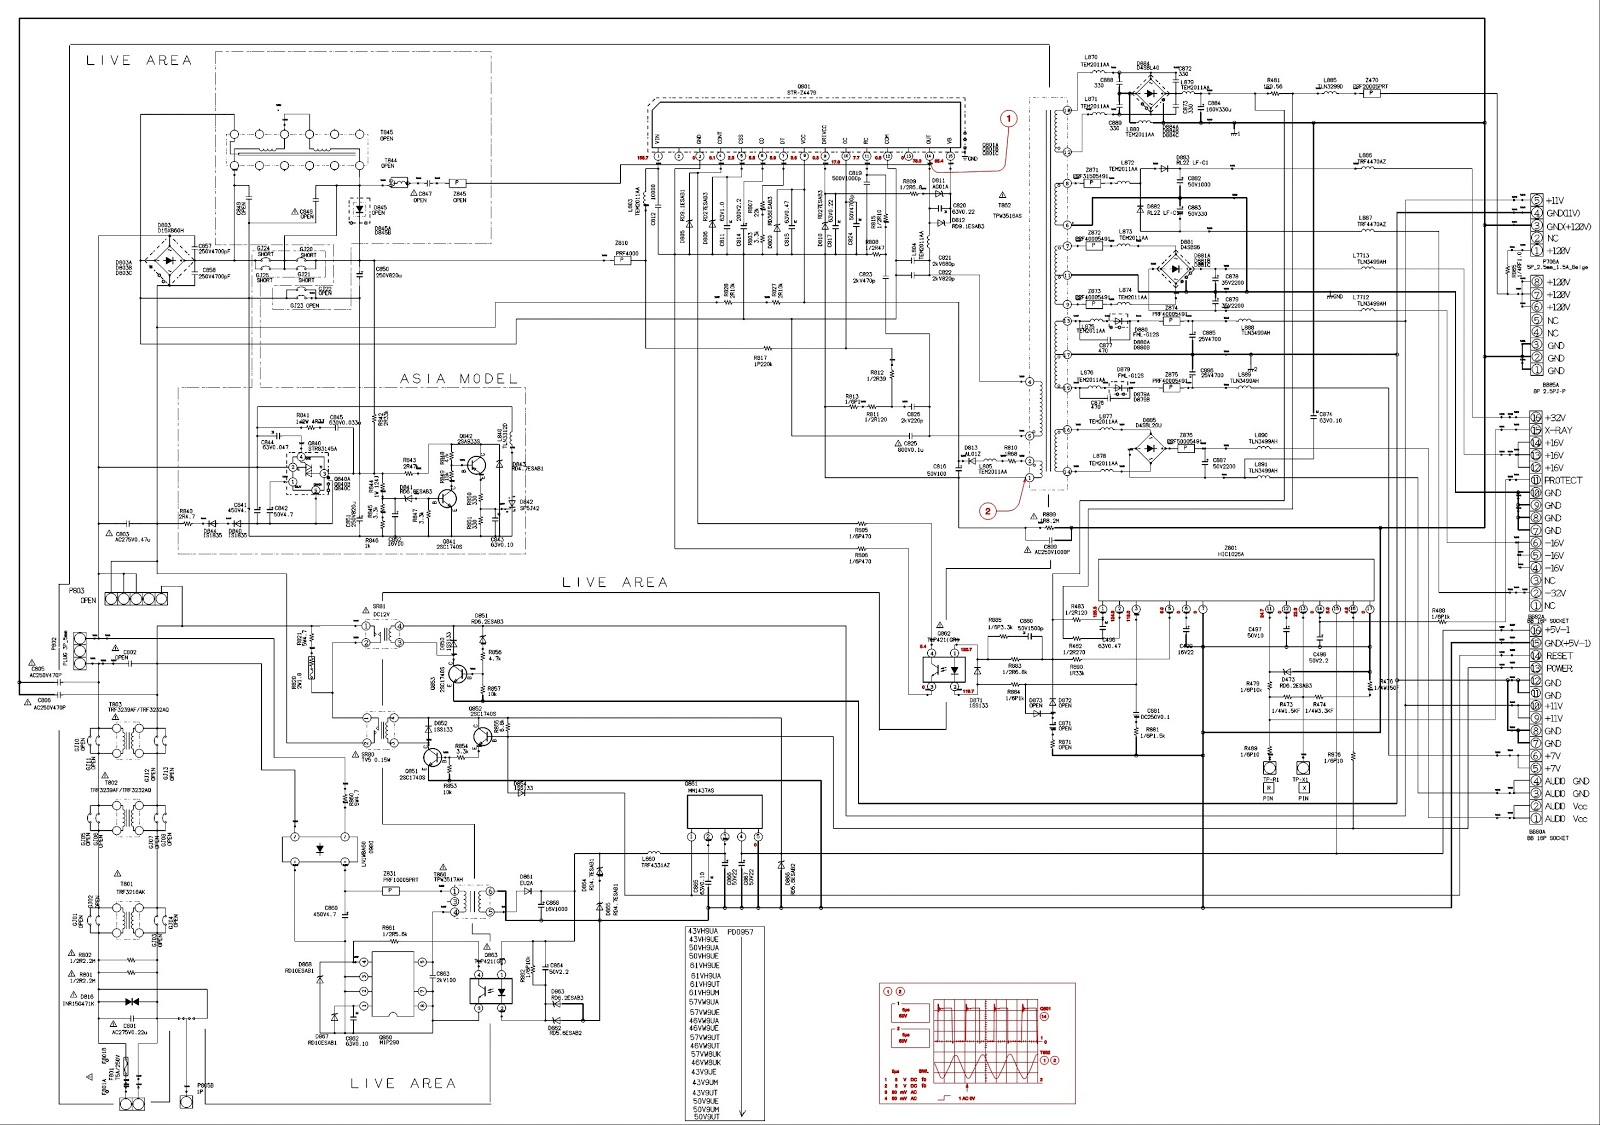 power%2B %2Bsmps toshiba 50 inch projection tv smps schematic electro help toshiba motor wiring diagram at mifinder.co